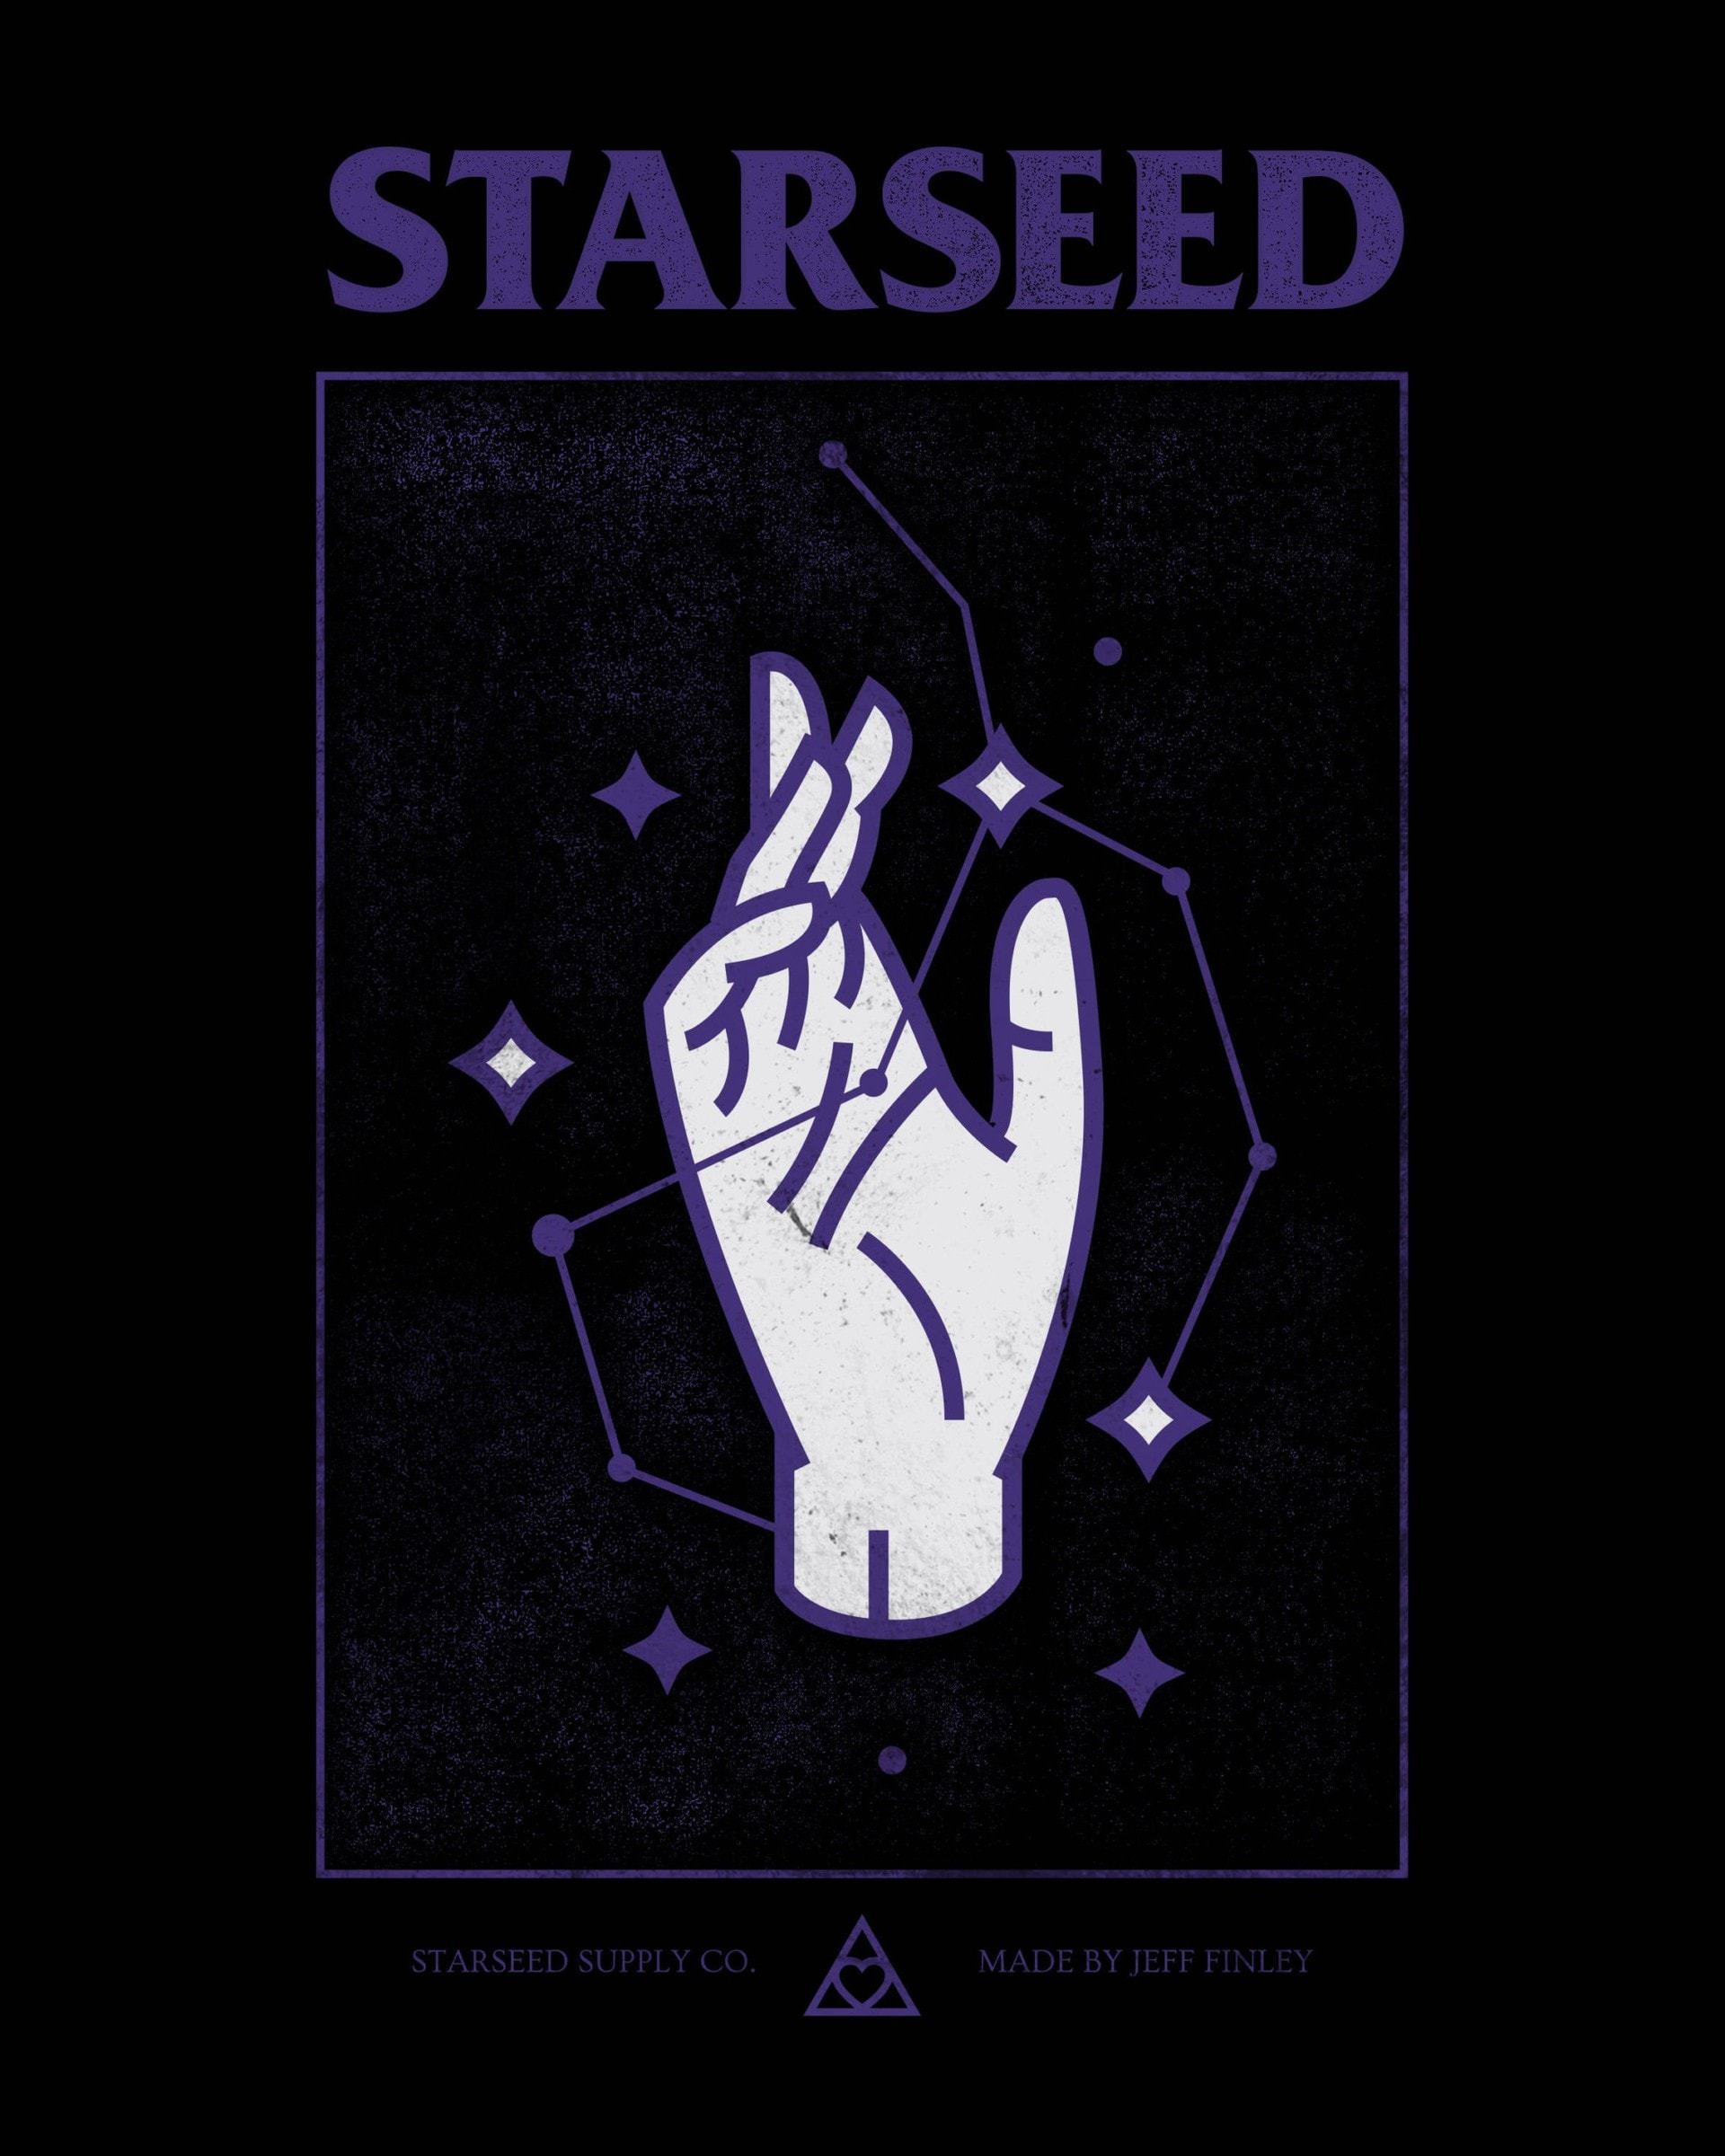 Starseed Constellation Illustration by Jeff Finley